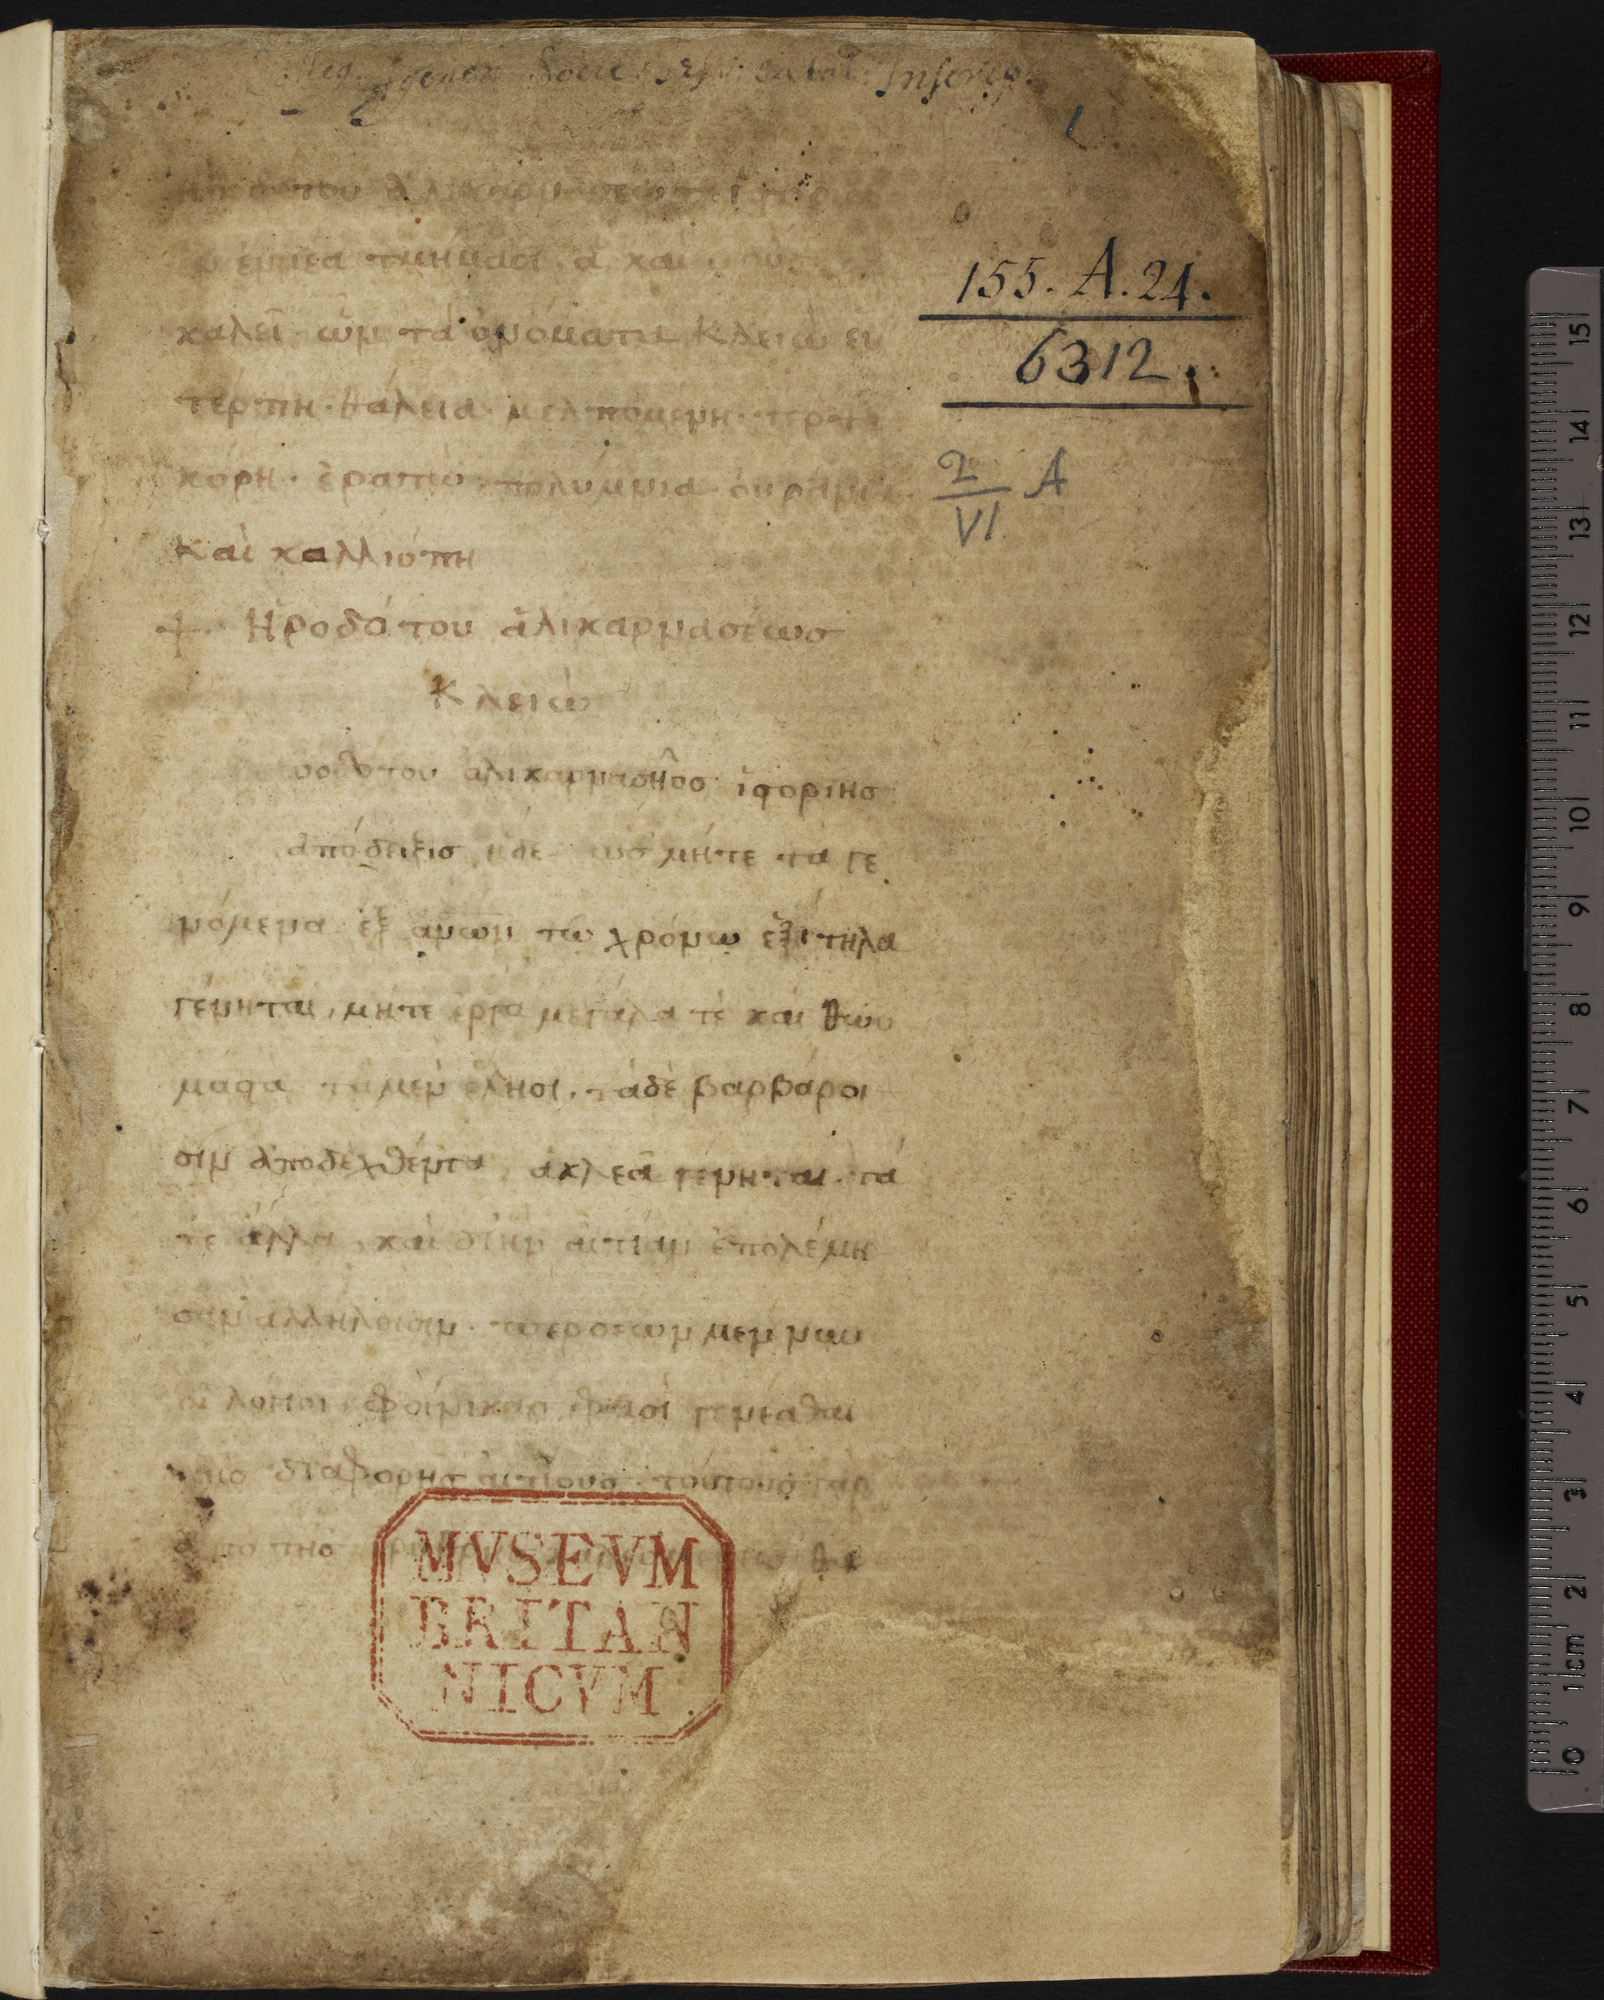 The First Book of Herodotus' Histories (Harley MS 6312 f001r)